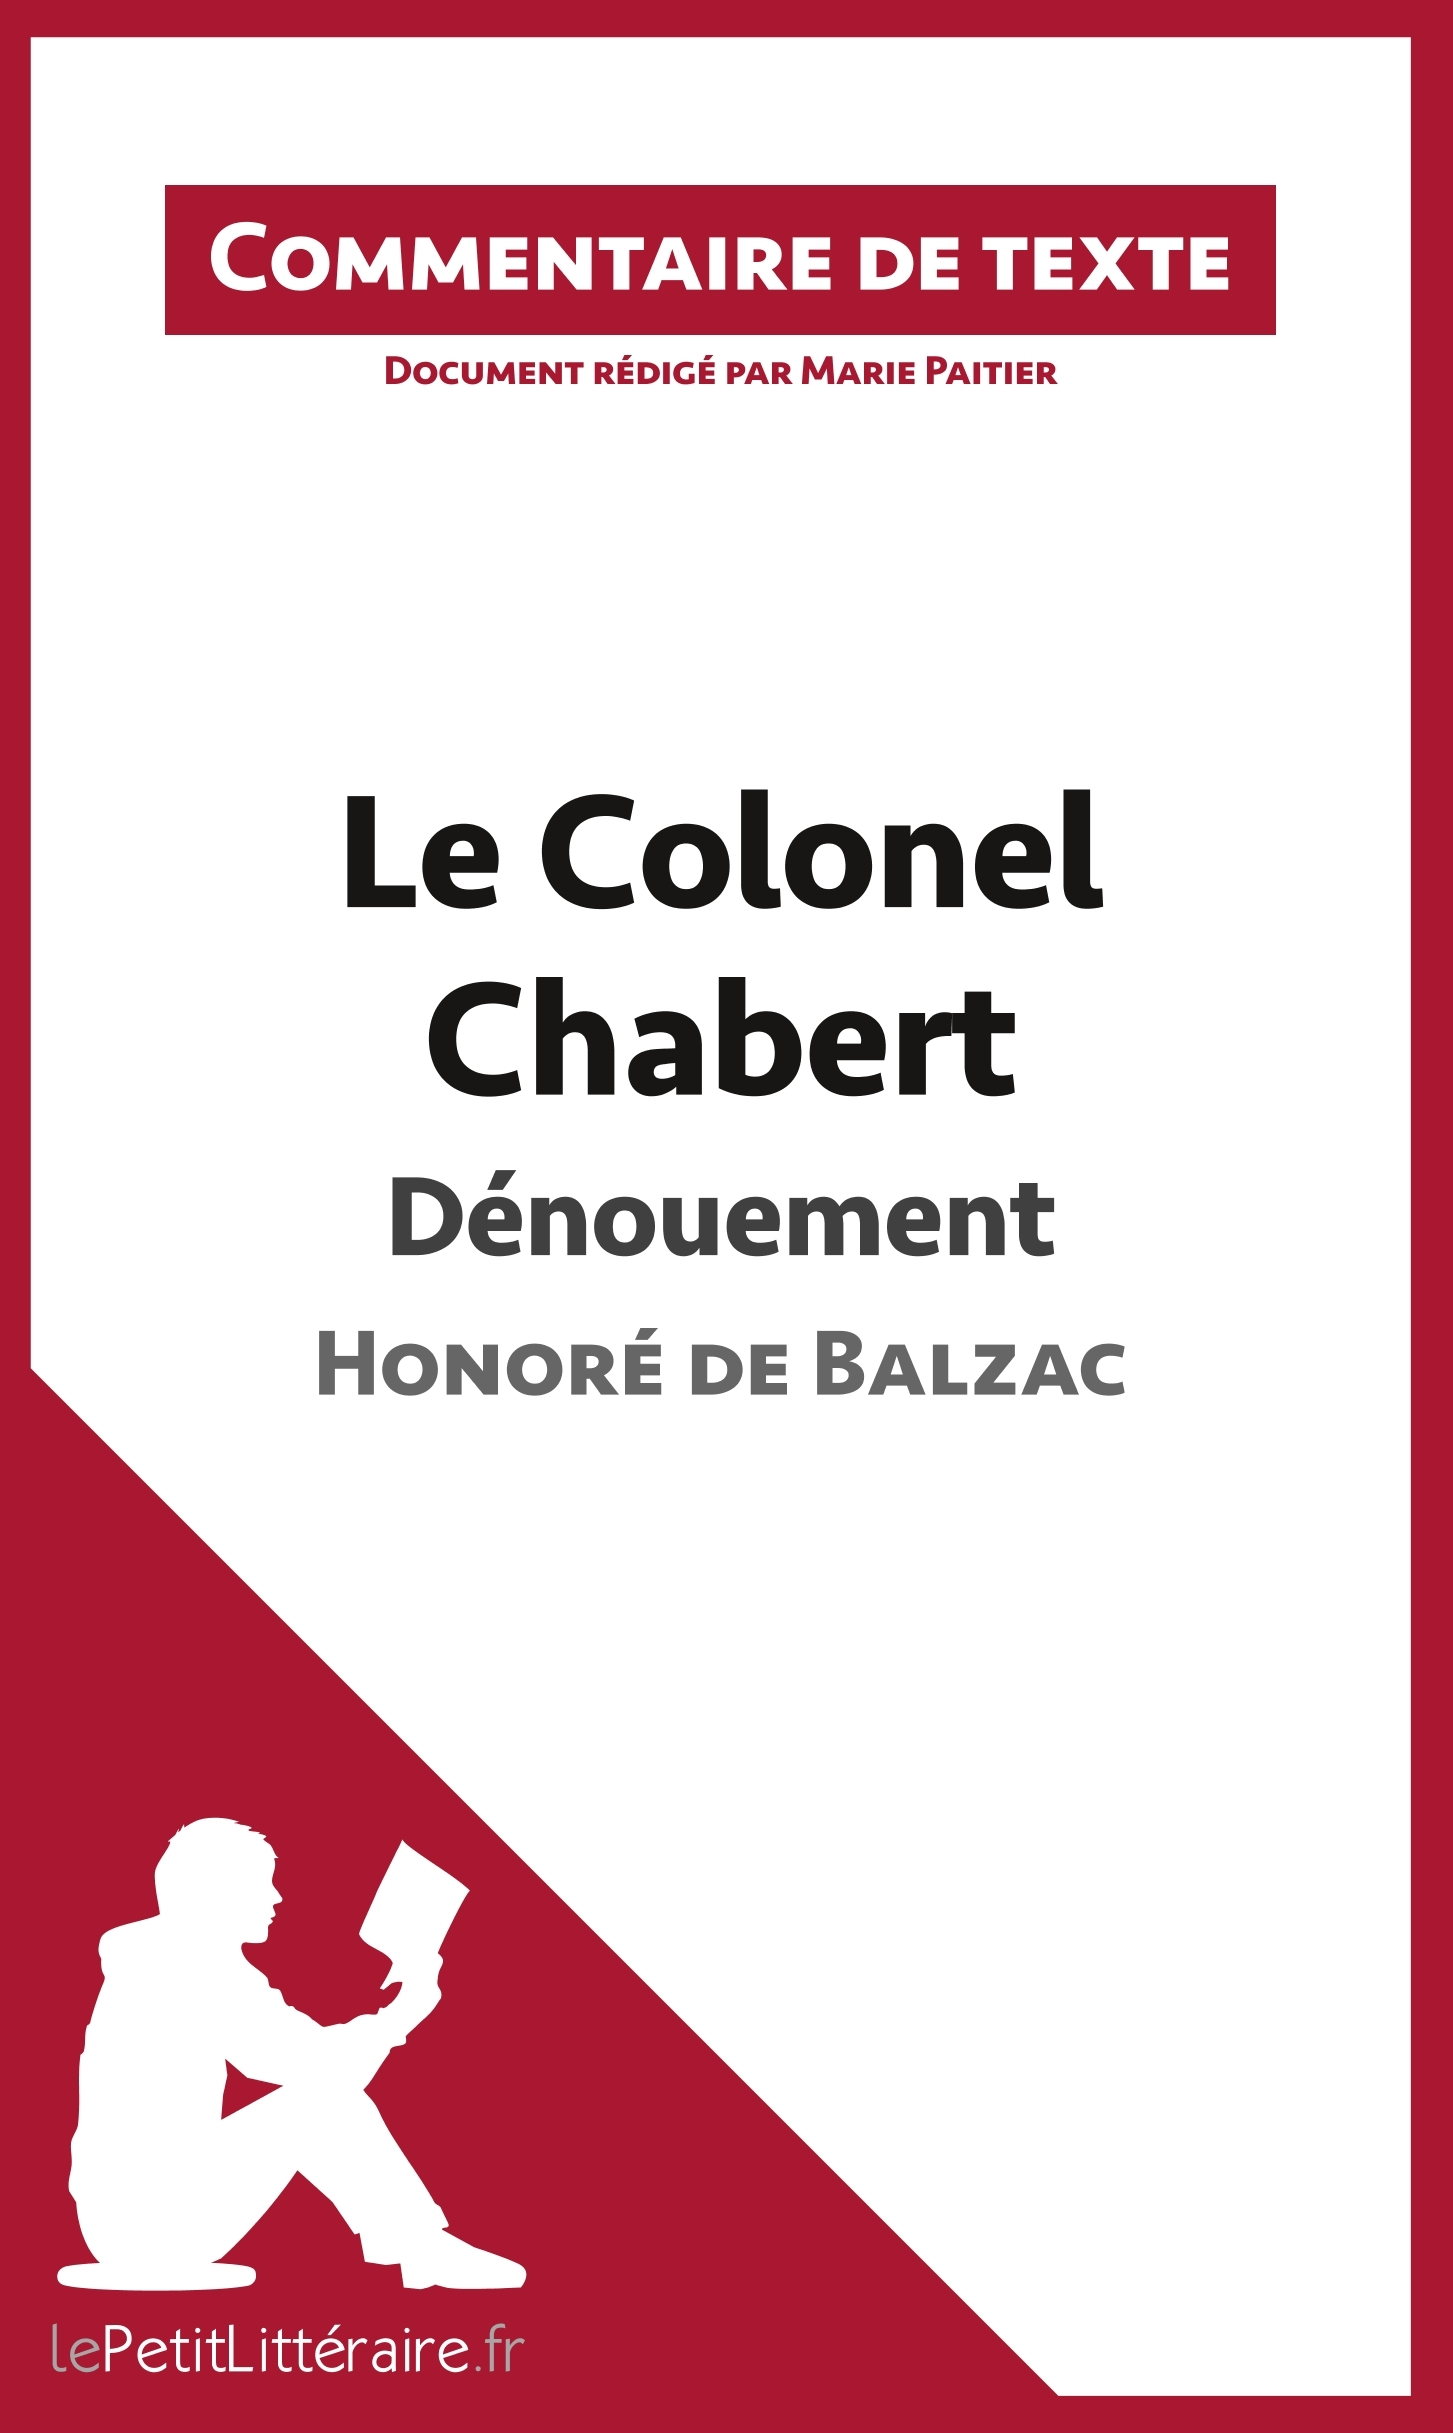 COMMENTAIRE COMPOSE LE COLONEL CHABERT DE BALZAC DENOUEMENT